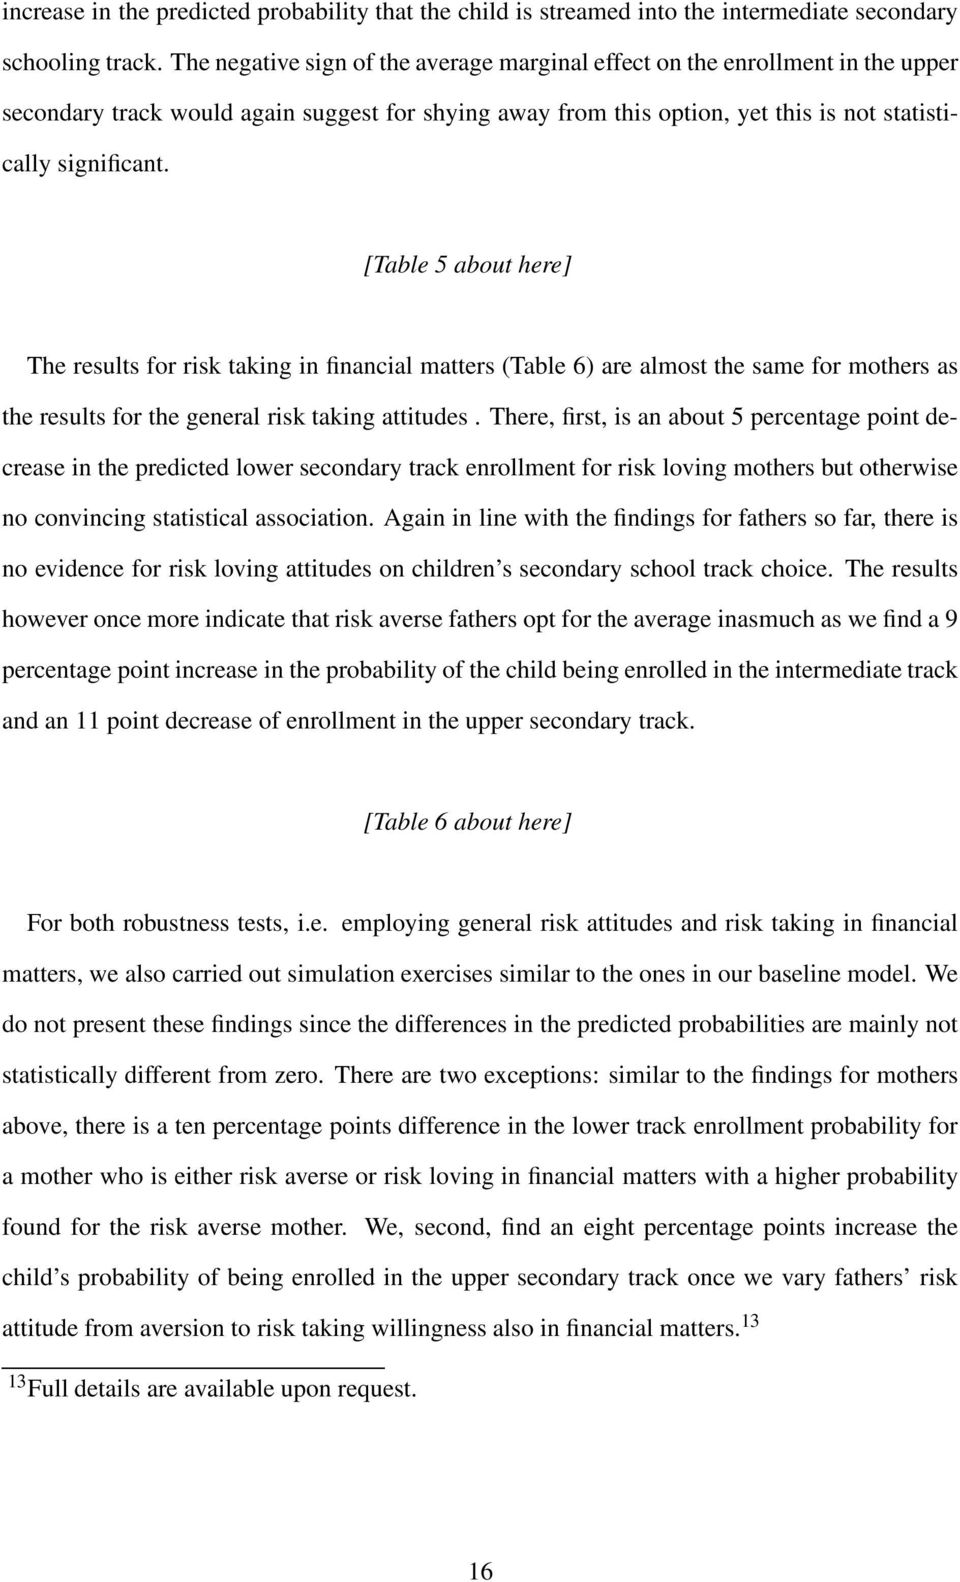 [Table 5 about here] The results for risk taking in financial matters (Table 6) are almost the same for mothers as the results for the general risk taking attitudes.